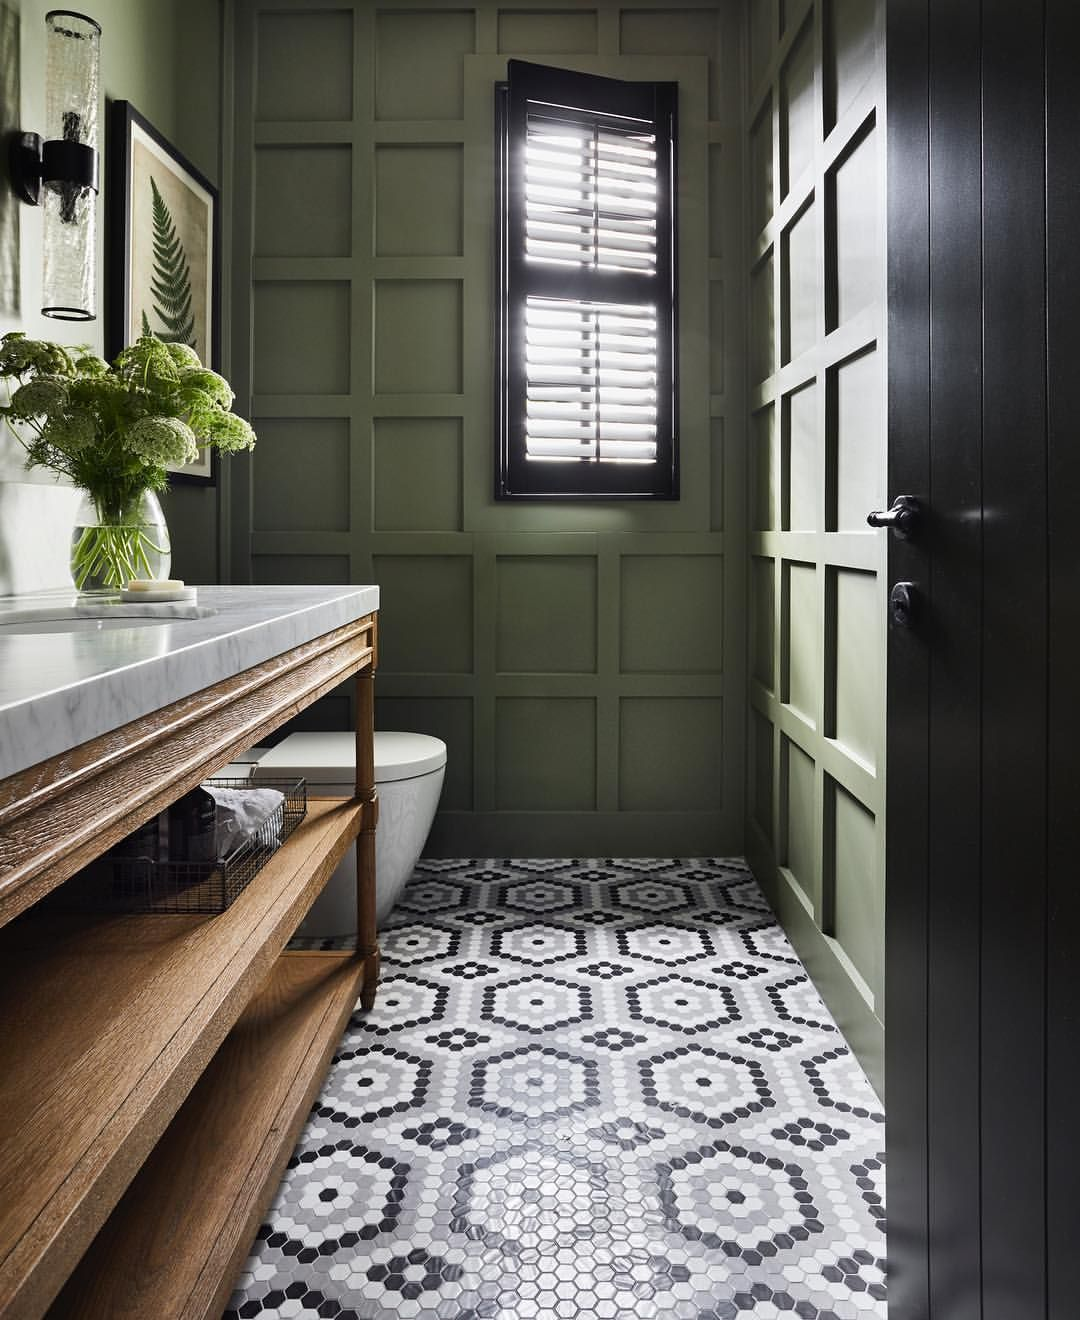 64 Olive Green Rooms Ideas Green Rooms Olive Green Rooms House Interior